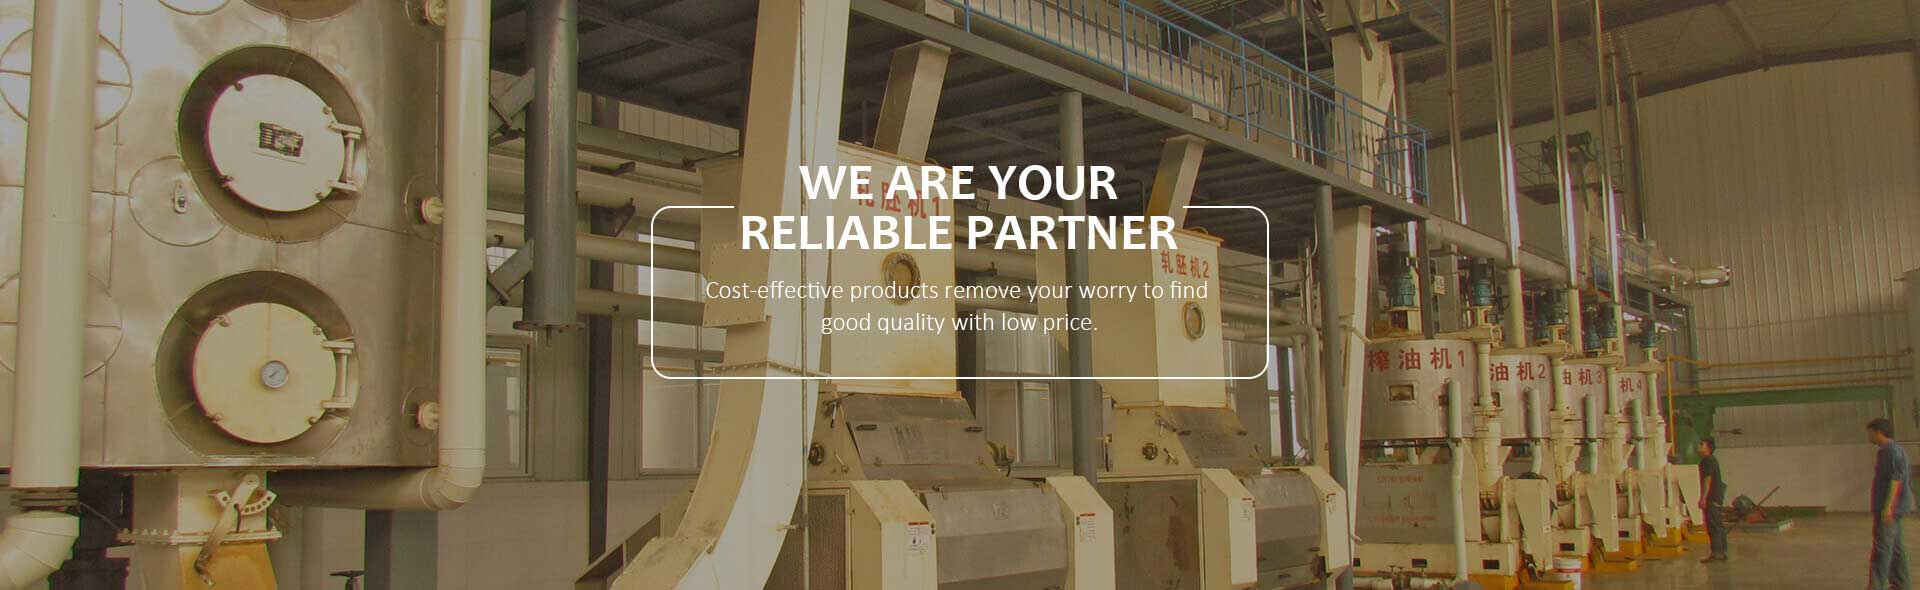 We are your reliable partner